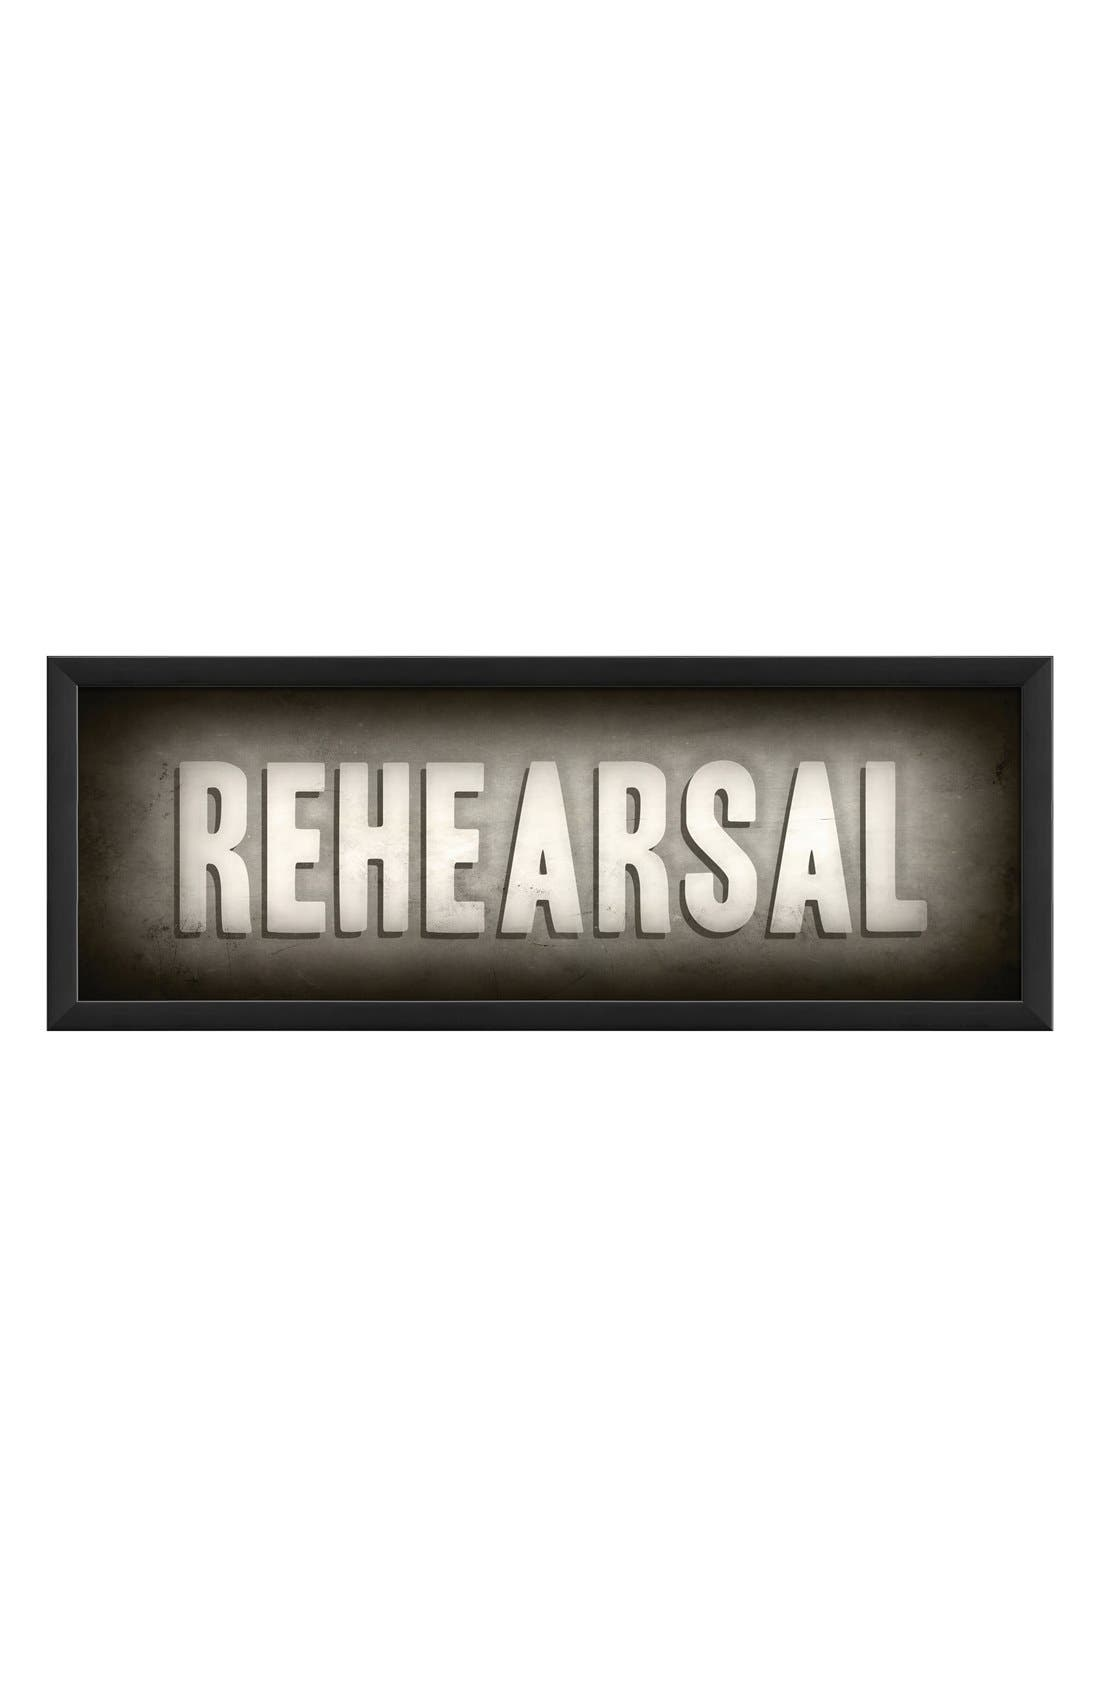 Main Image - Spicher and Company 'Rehearsal' Vintage Look Theater Sign Artwork